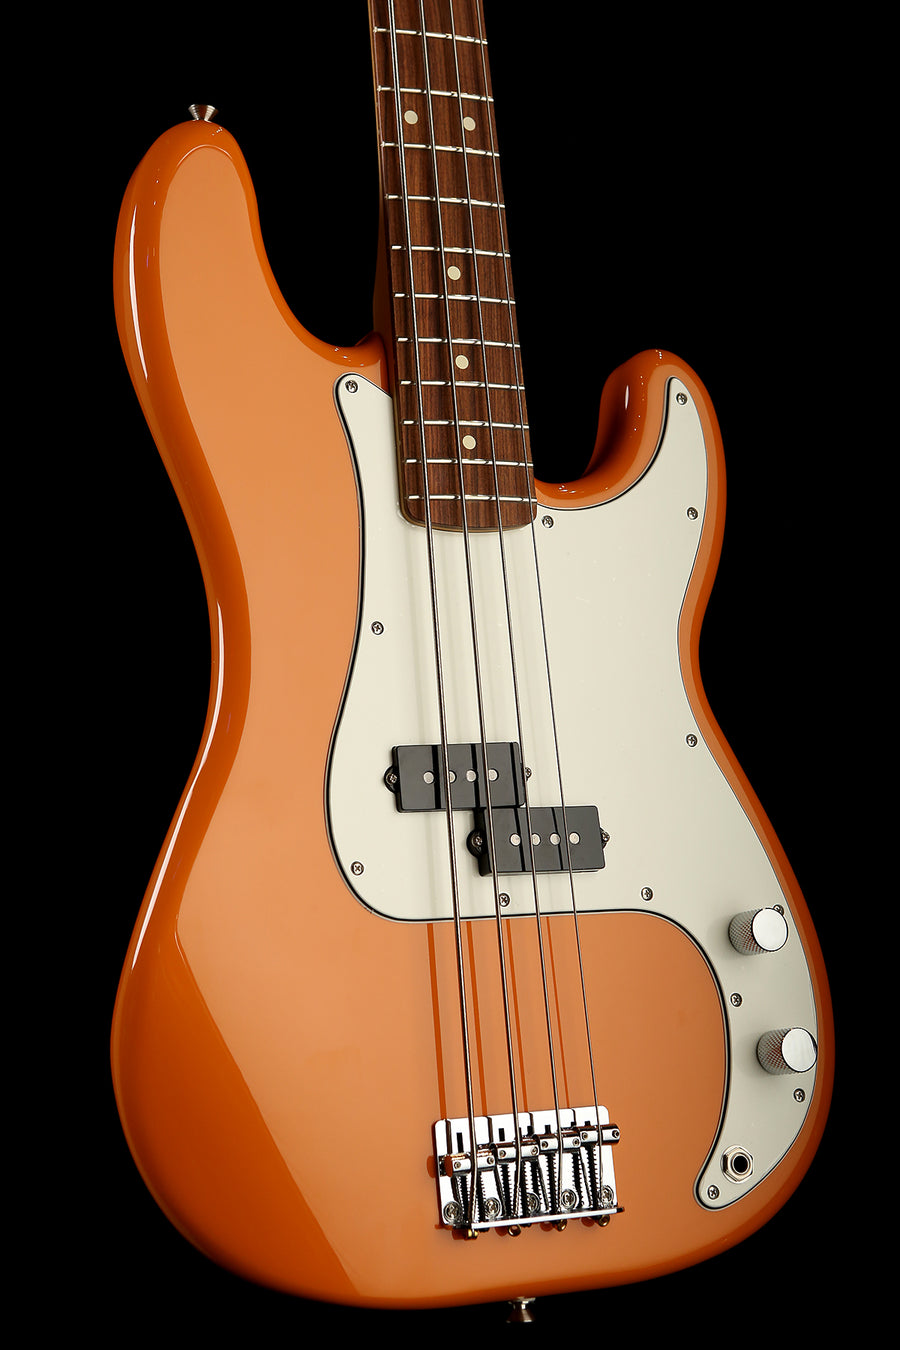 Fender Player Series Precision Bass